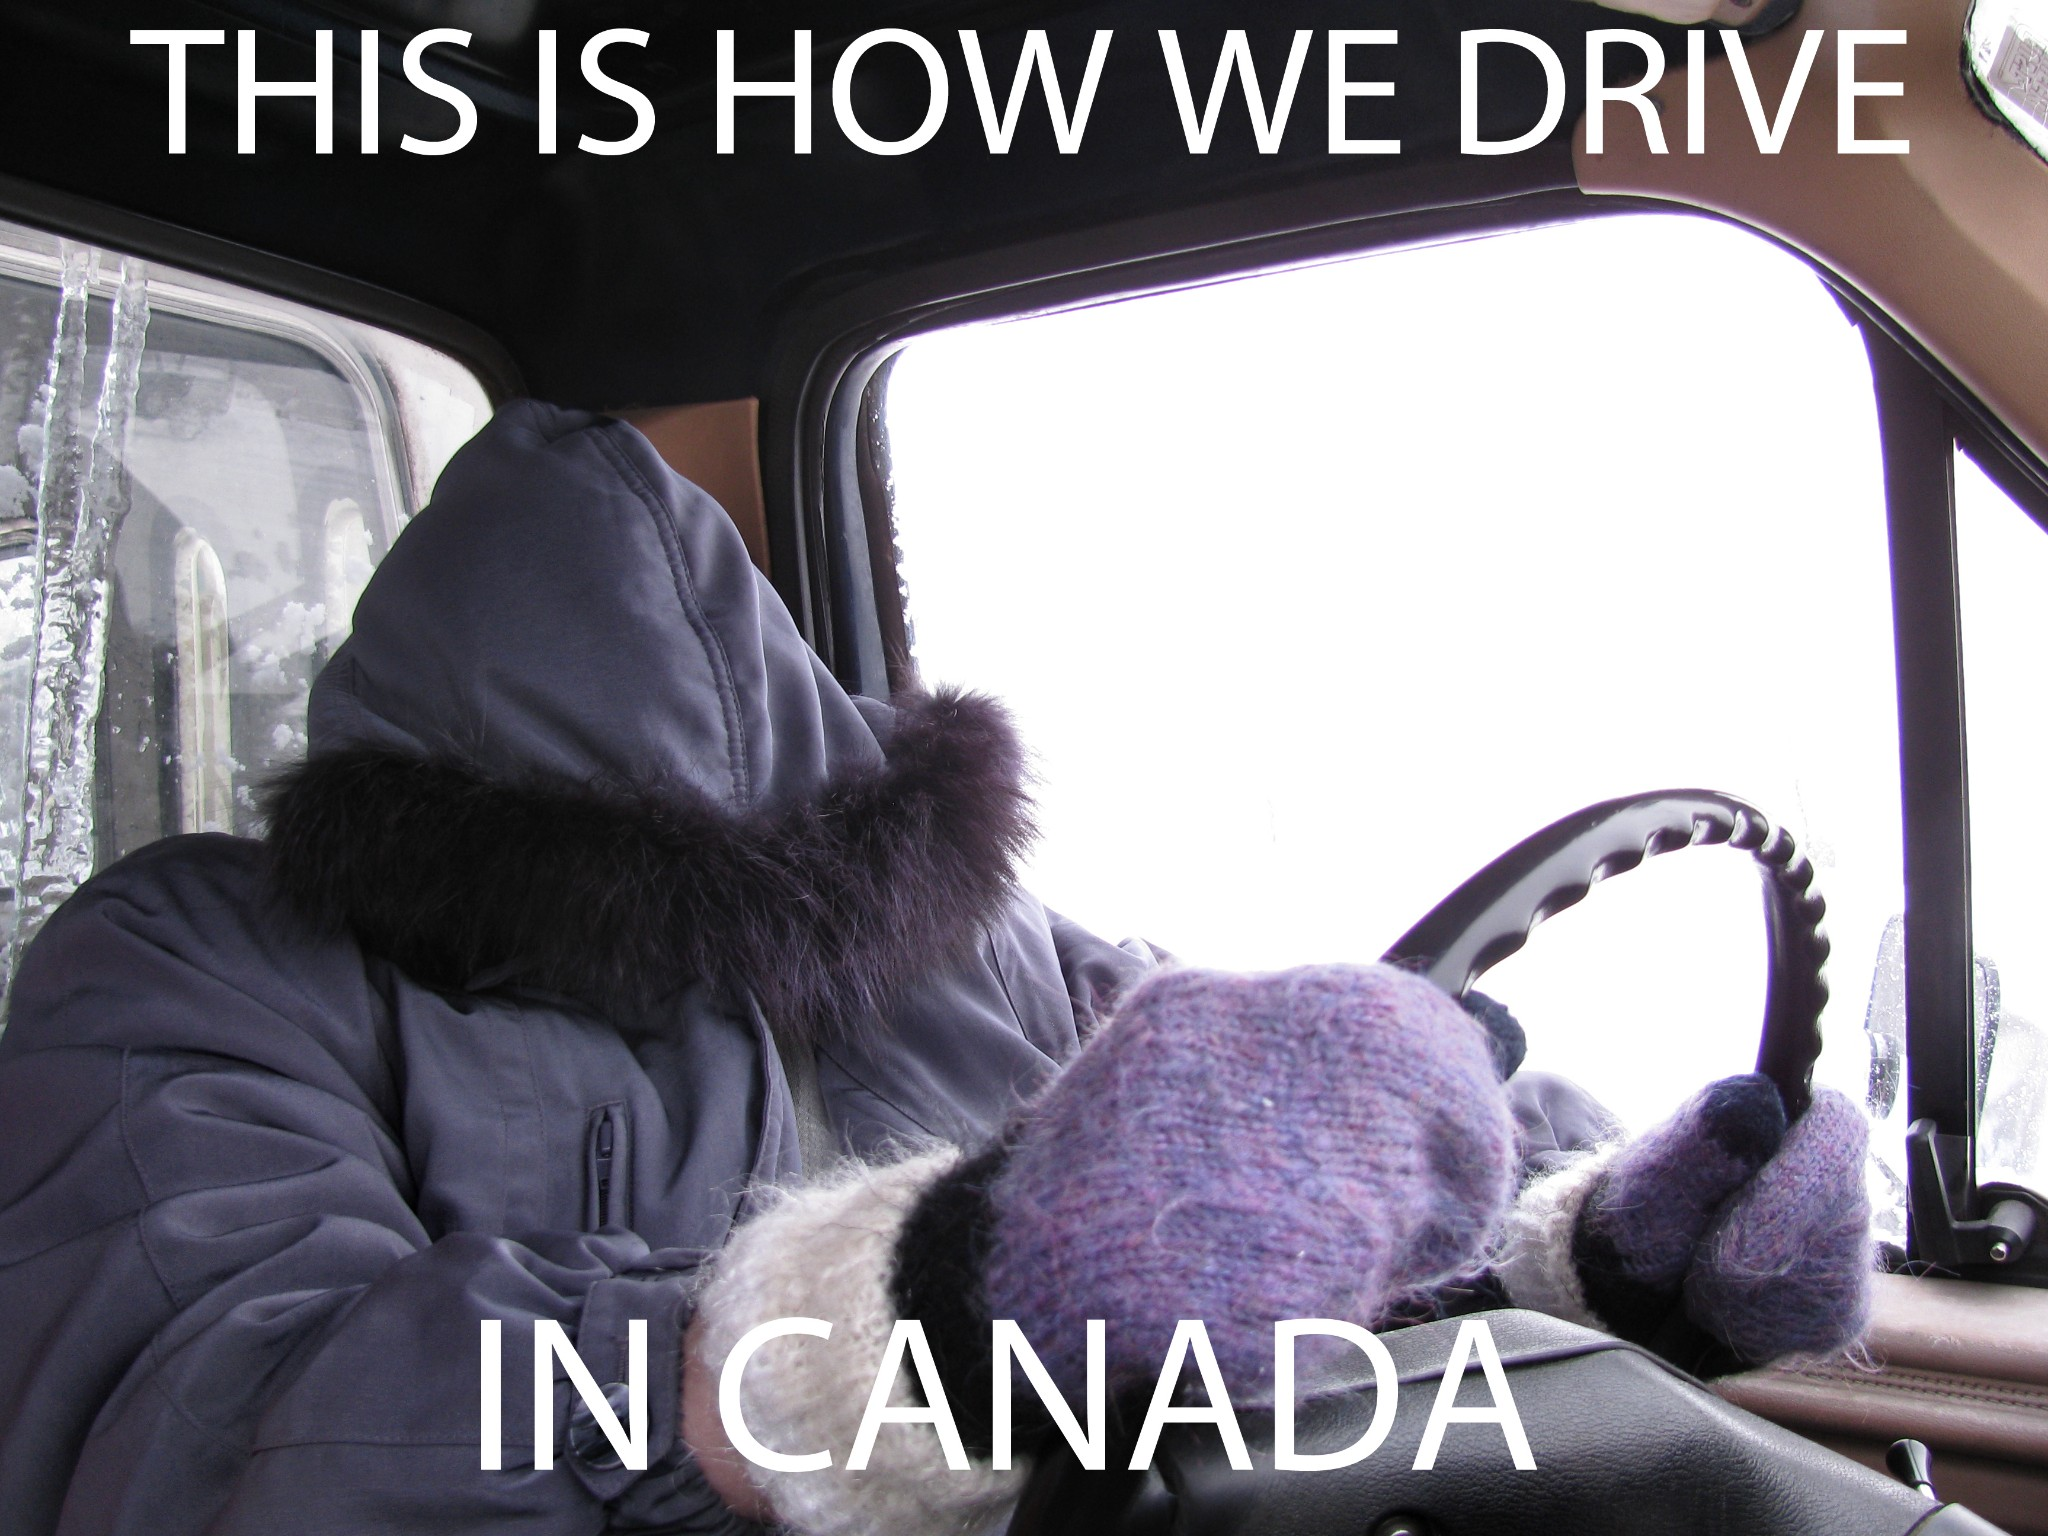 Photo: This is How We Drive in Canada  I was going through old images on my hard drives trying to look for material for future concepts and I came across this one and I couldn't resist putting this text on it and posting it. This is the first time I have ever done something like this.